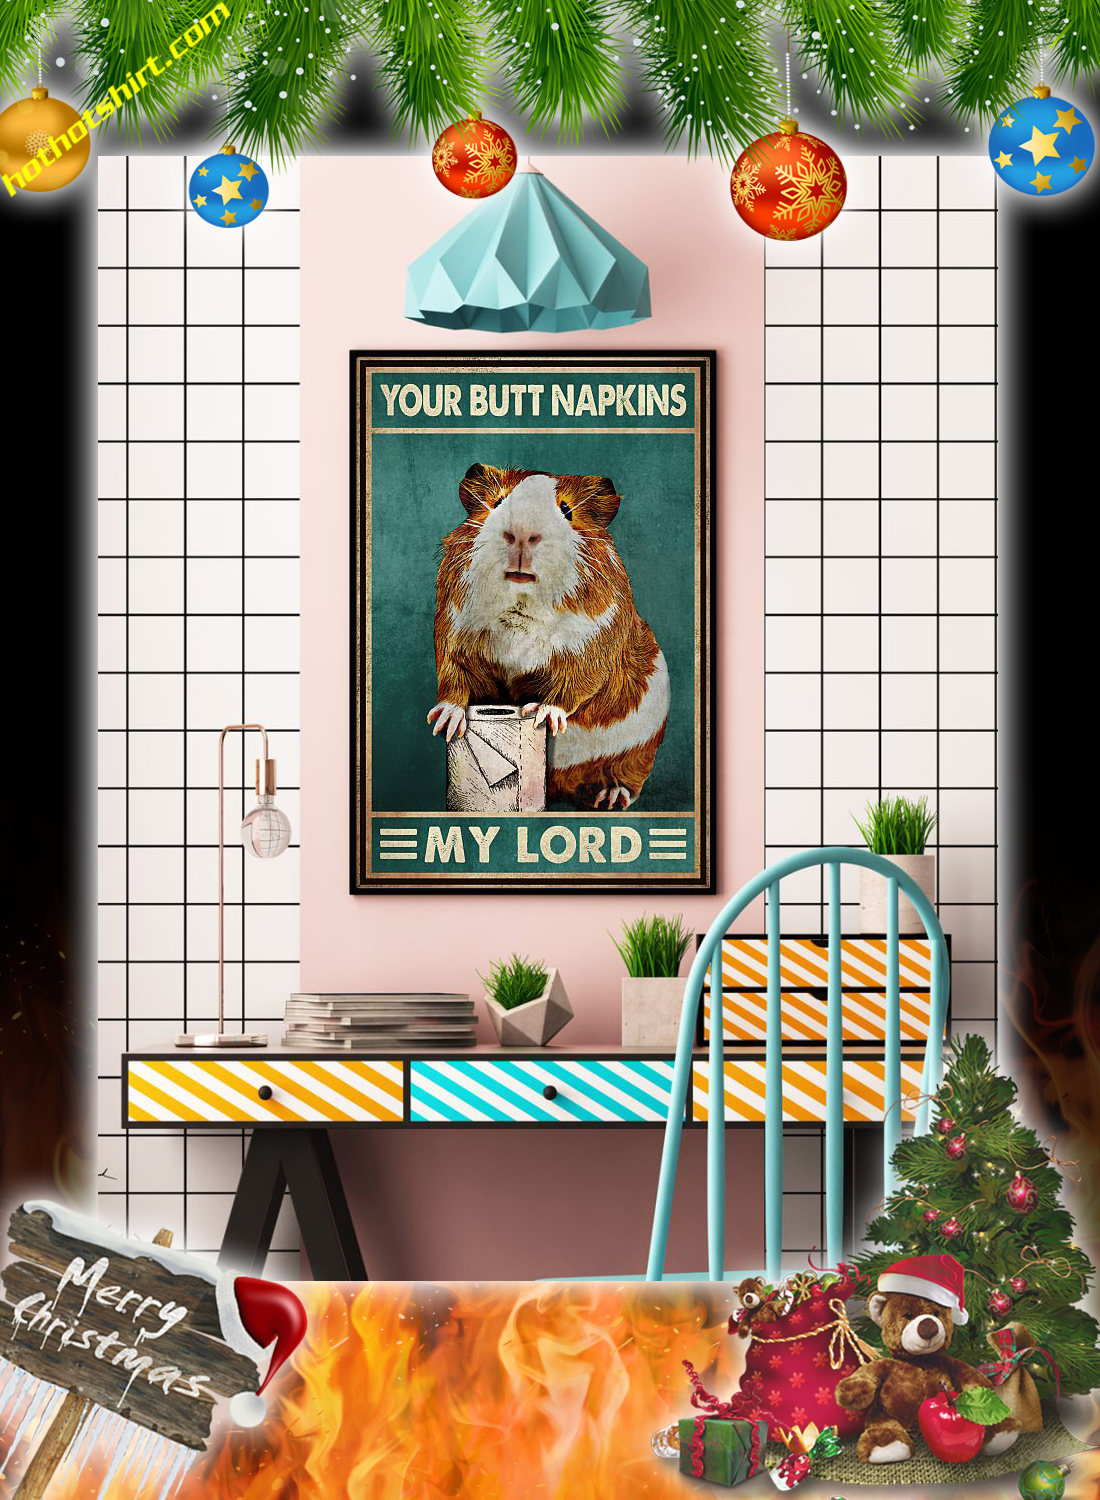 Hamster your butt napkins my lord poster 3